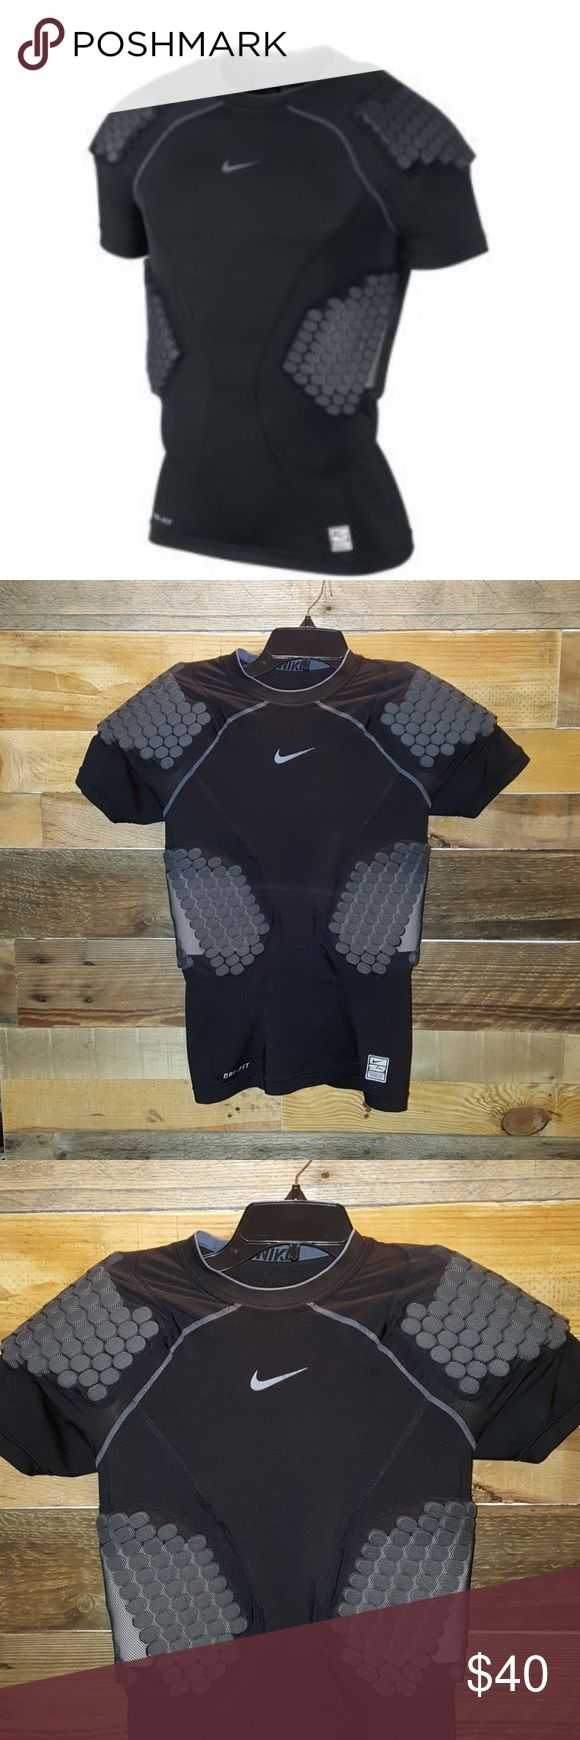 NIKE PRO COMBAT DRI FIT COMPRESSION SHIRT NIKE DRI FIT PADDED COMPRESSION SHIRT SIZE SMALL COLOR BLACK PRO COMBAT PROTECTION PADDED FOOTBALL SHIRT FOR ADDED PROTECTION POLYESTER/SPANDEX EUC-SOME MINOR PILLING ON BACK ALL PADDING STITCHING INTACT  NO TEARS OR HOLES PADDED ON TOPS OF SHOULDERS AND RIBS *NO TRADES NO RETURNS ASK QUESTIONS PLEASE* Nike Other